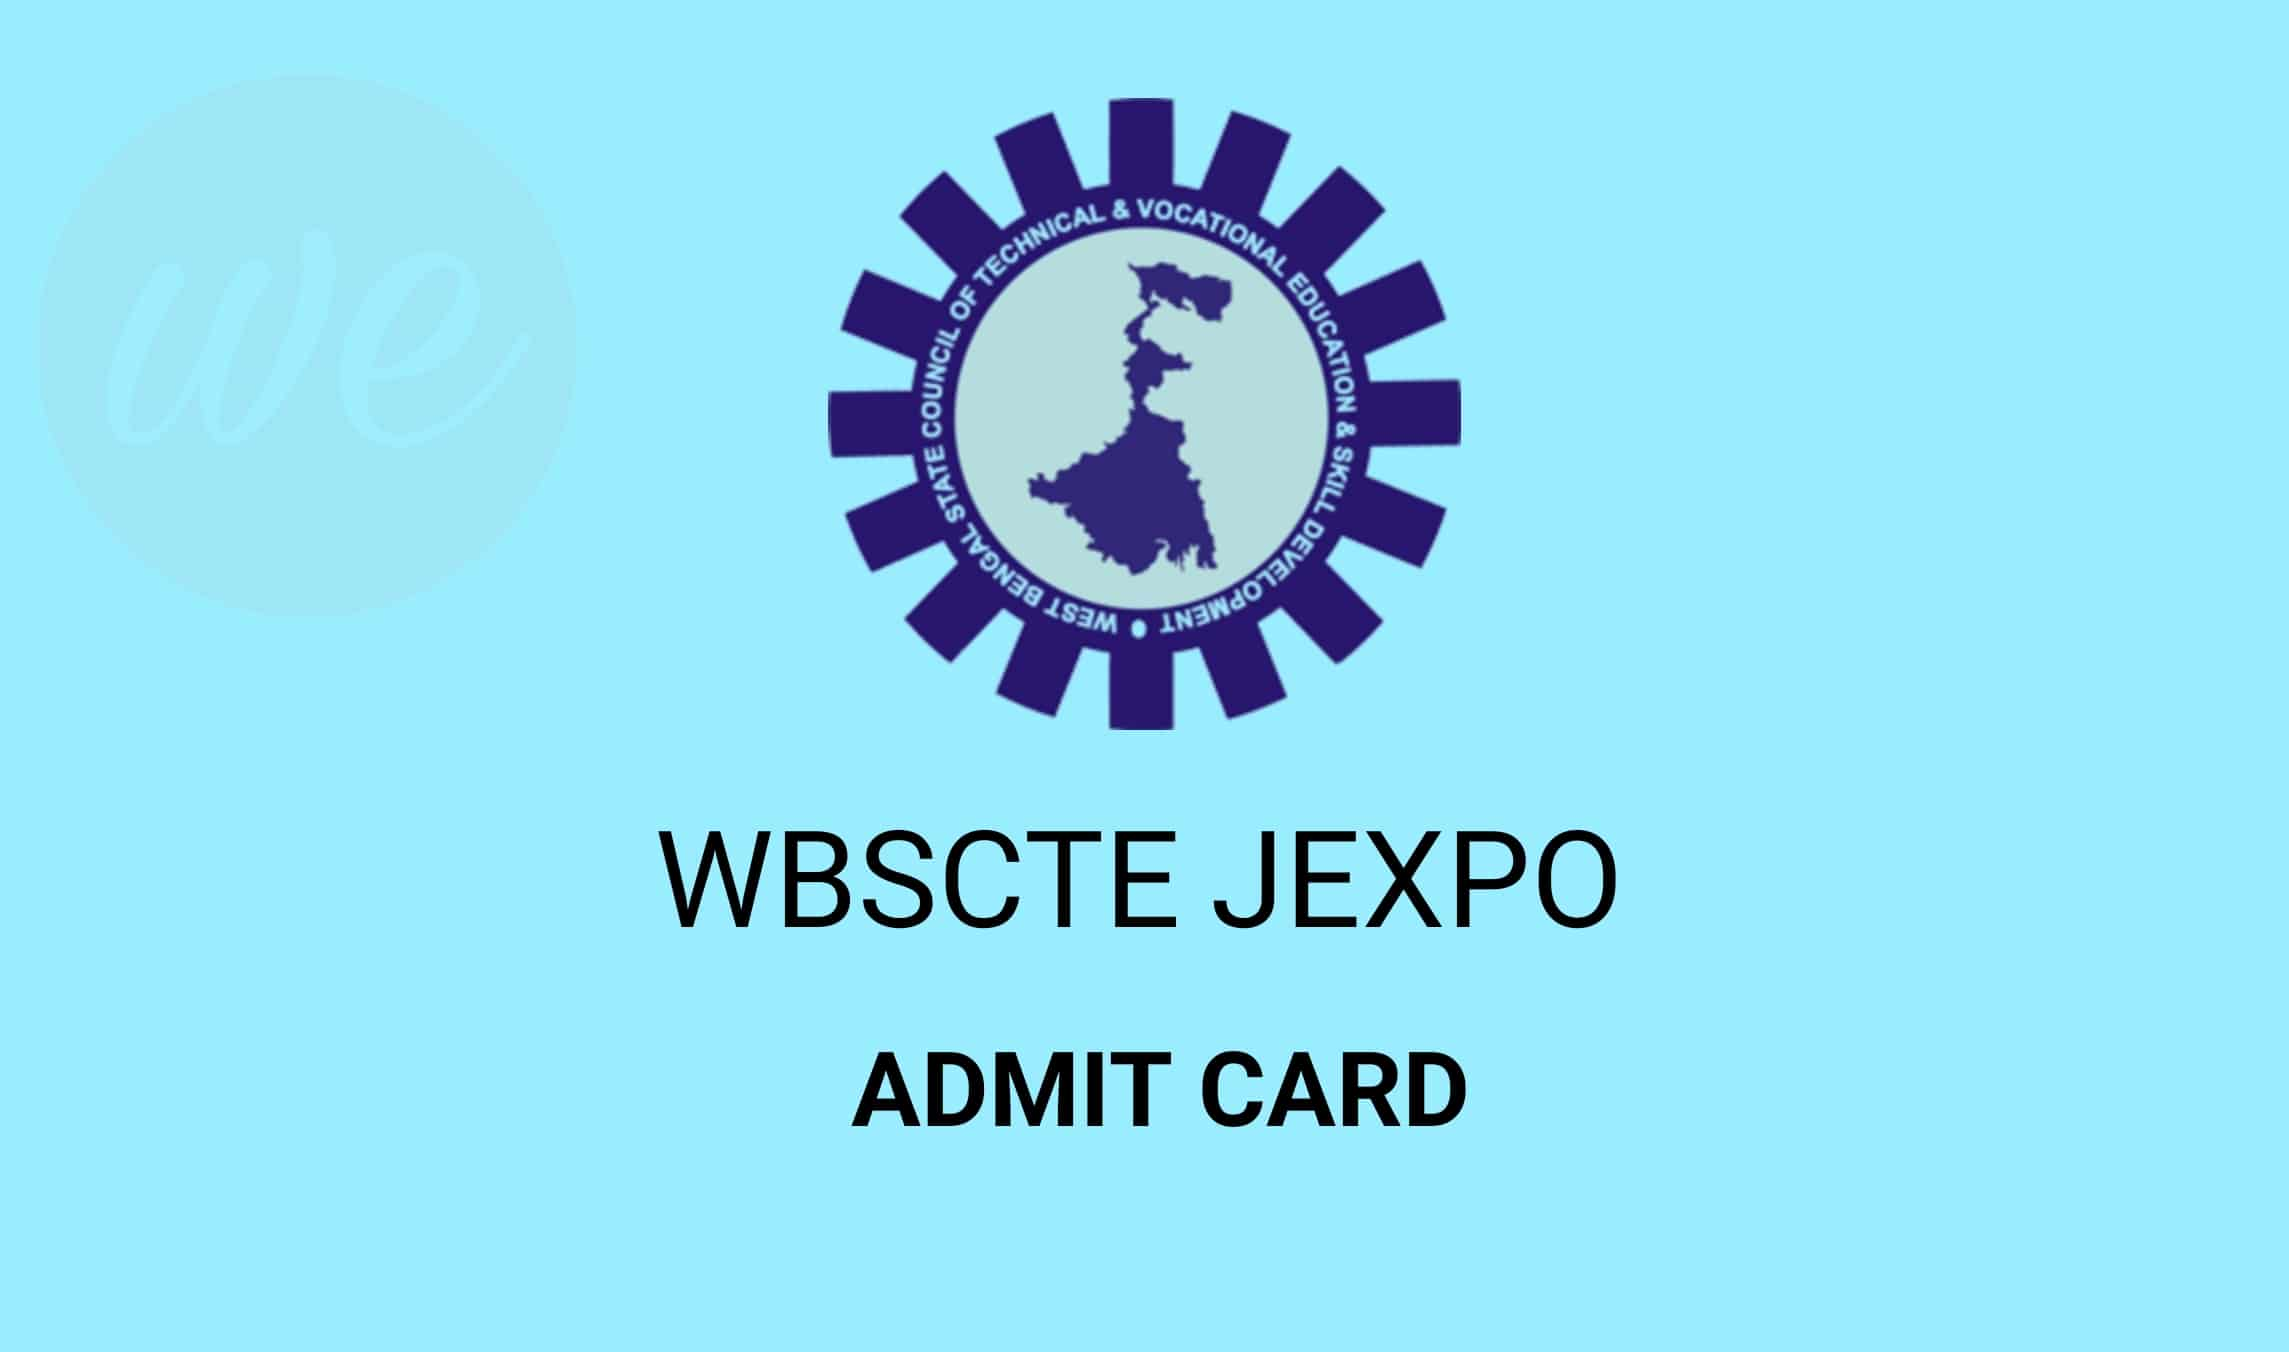 JEXPO Admit Card Download